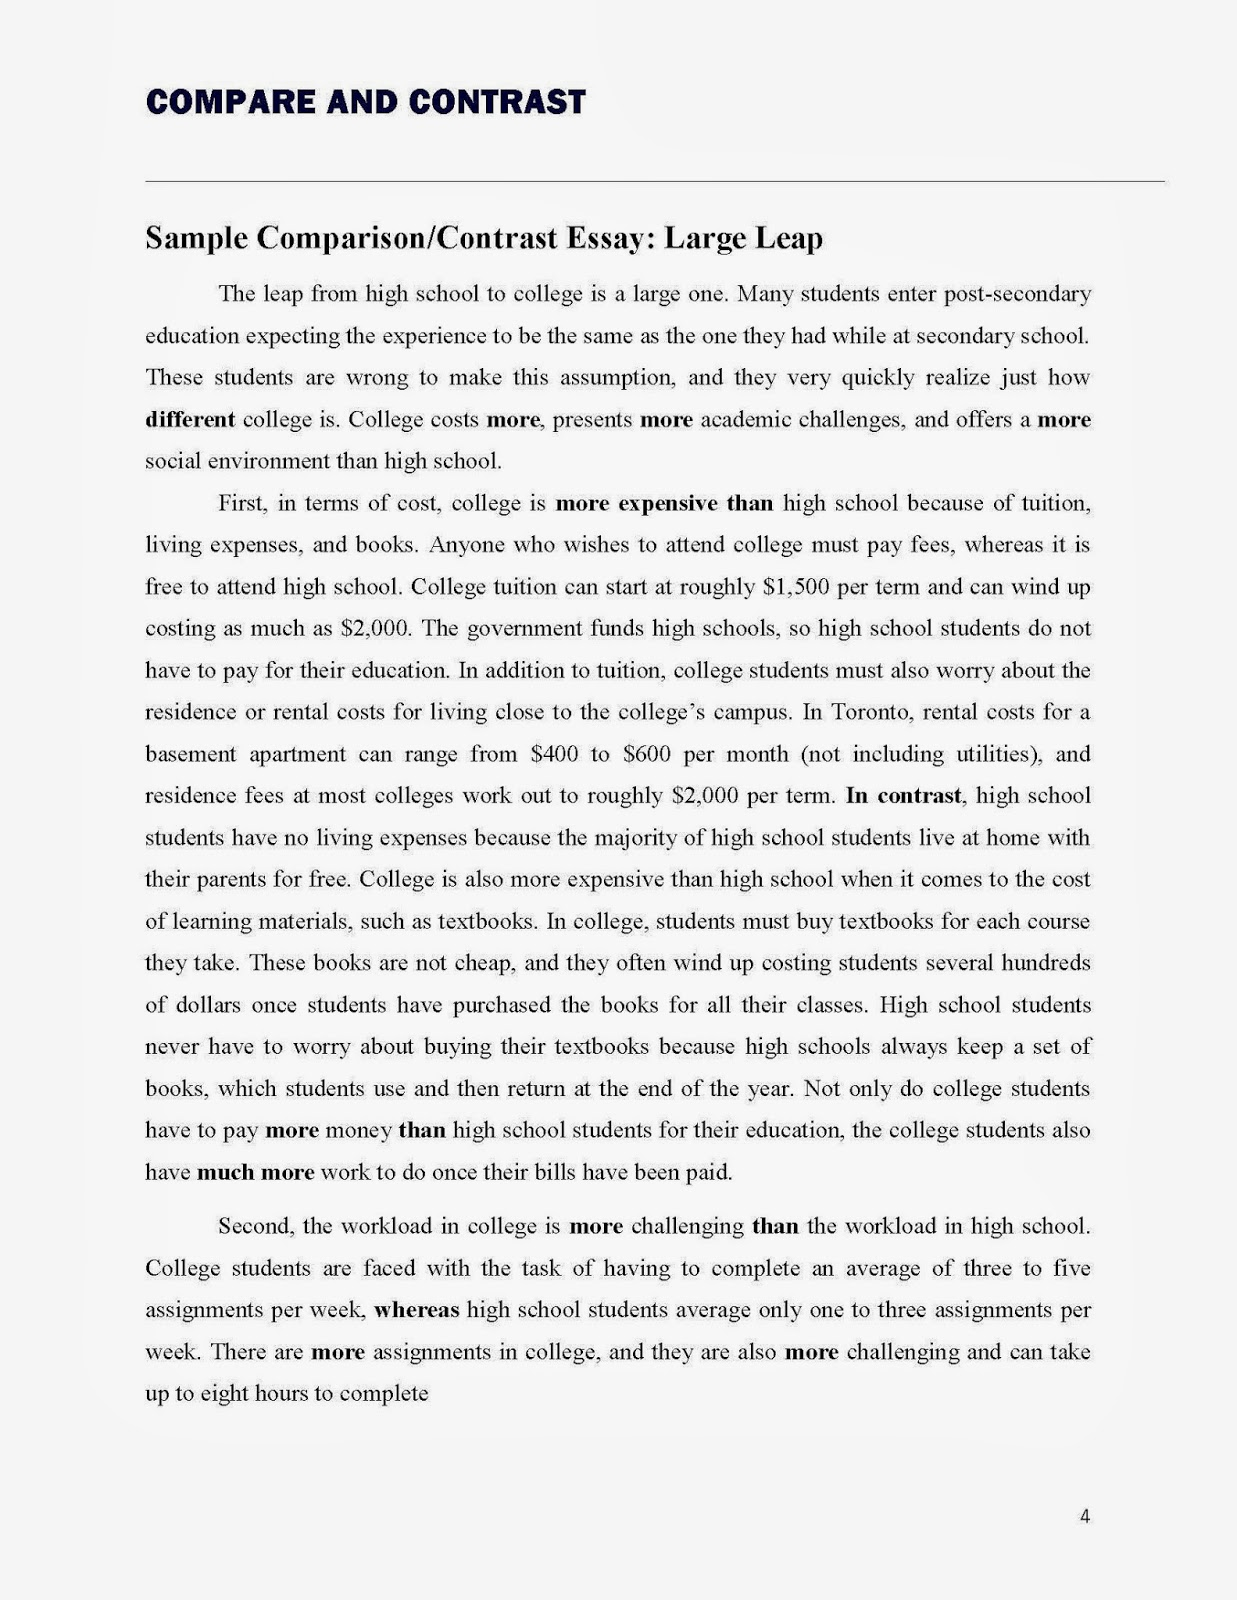 Illustration Essay Topics Compare Contrast Essay Prompts Compare Contrast Essay Writing Compare And Contrast  Essay Prompt Liao Ipnodns Rucompare Community College Essay also Neolithic Revolution Essay A Compare Contrast Essay Compare Contrast Essay Prompts Compare  Inventions Essay